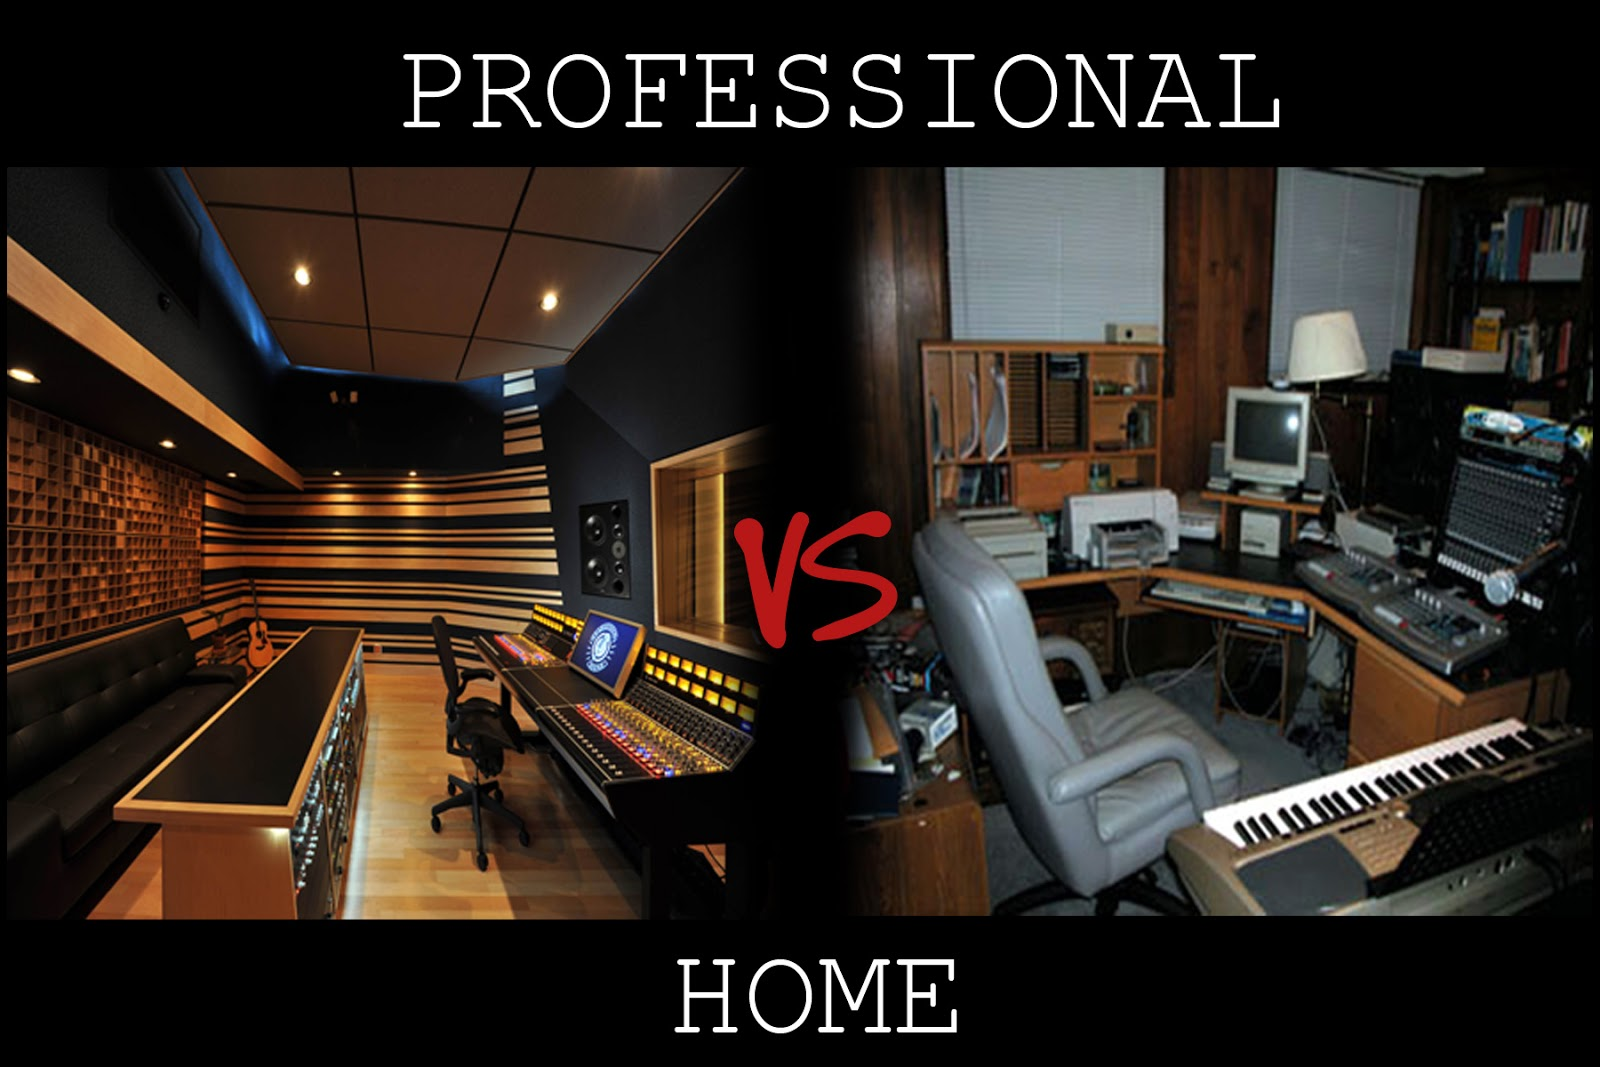 Professional Studio Space vs. Home Recording Studio: studio-setups.blogspot.com/2012/12/professional-vs-home.html